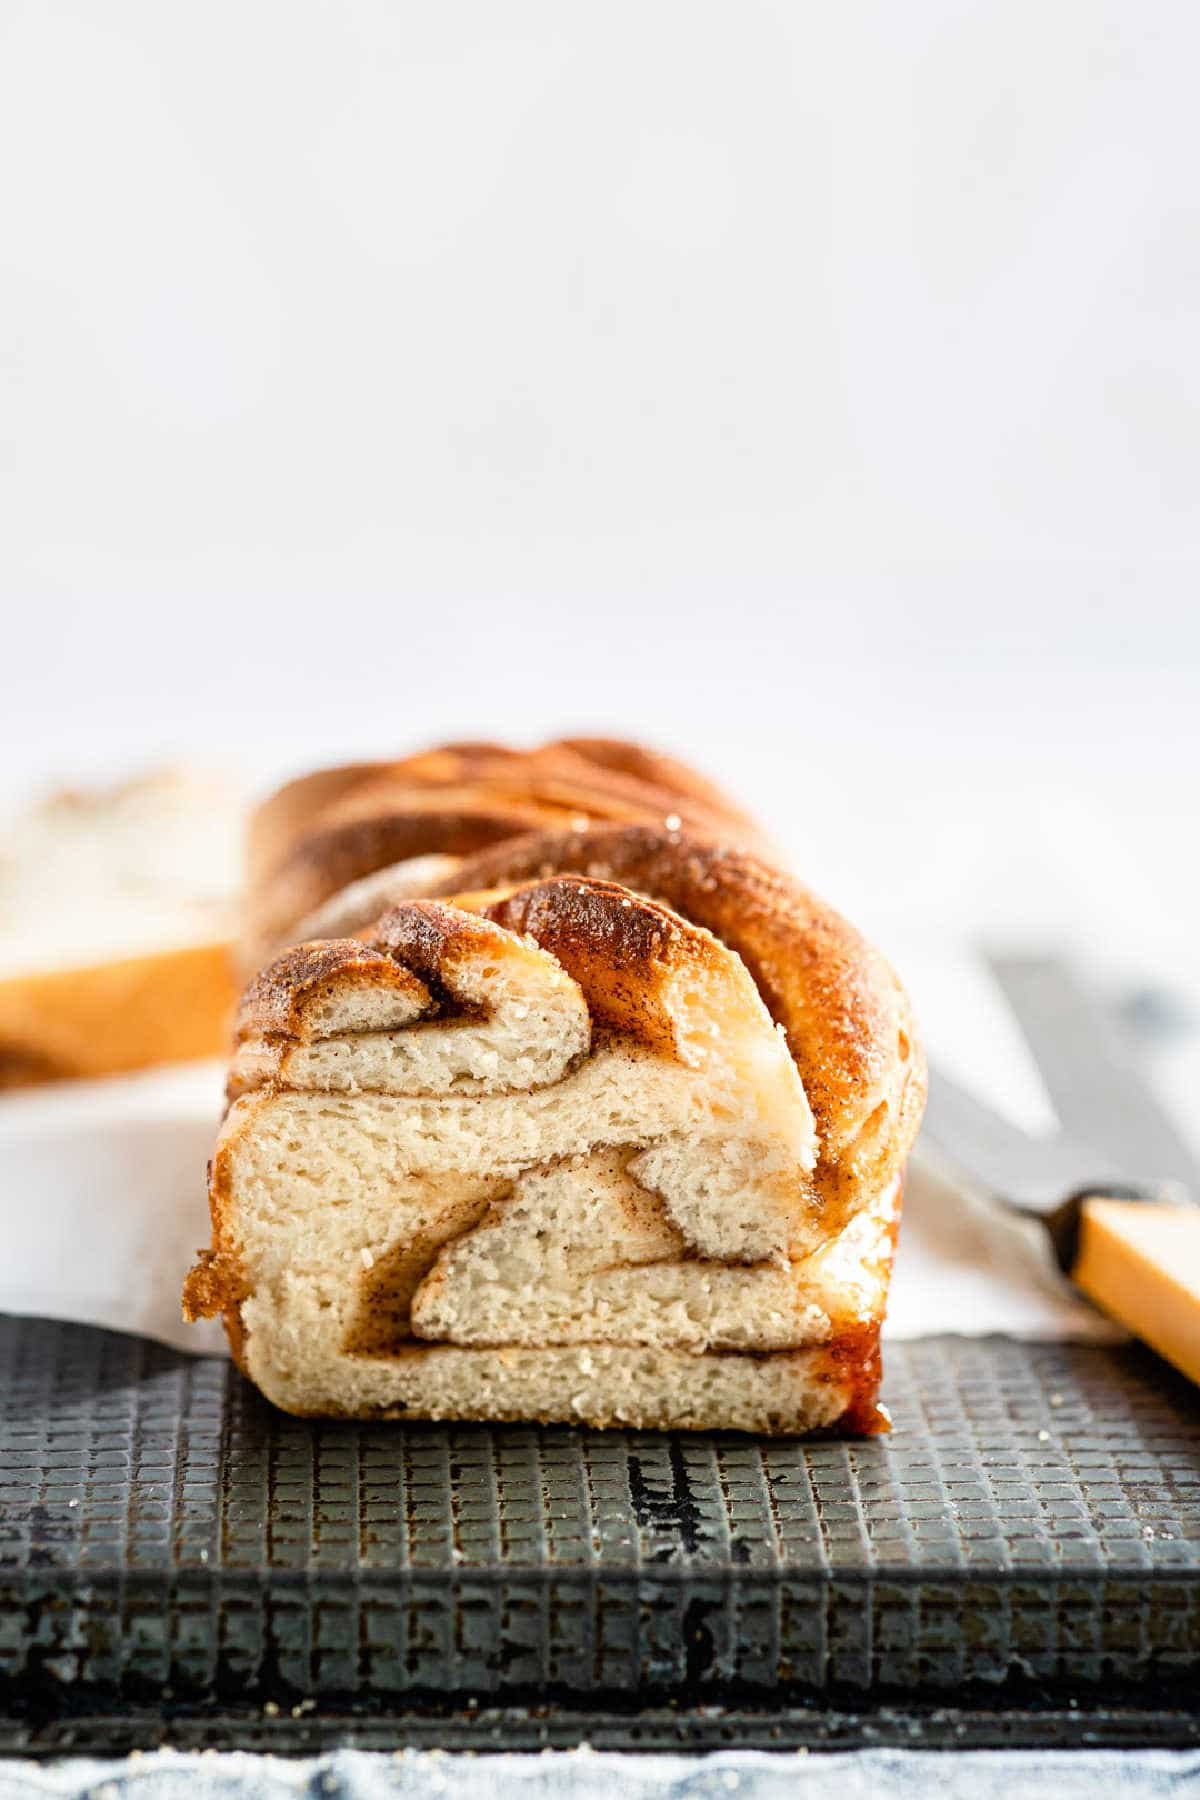 A loaf cinnamon twist bread with the end cut off